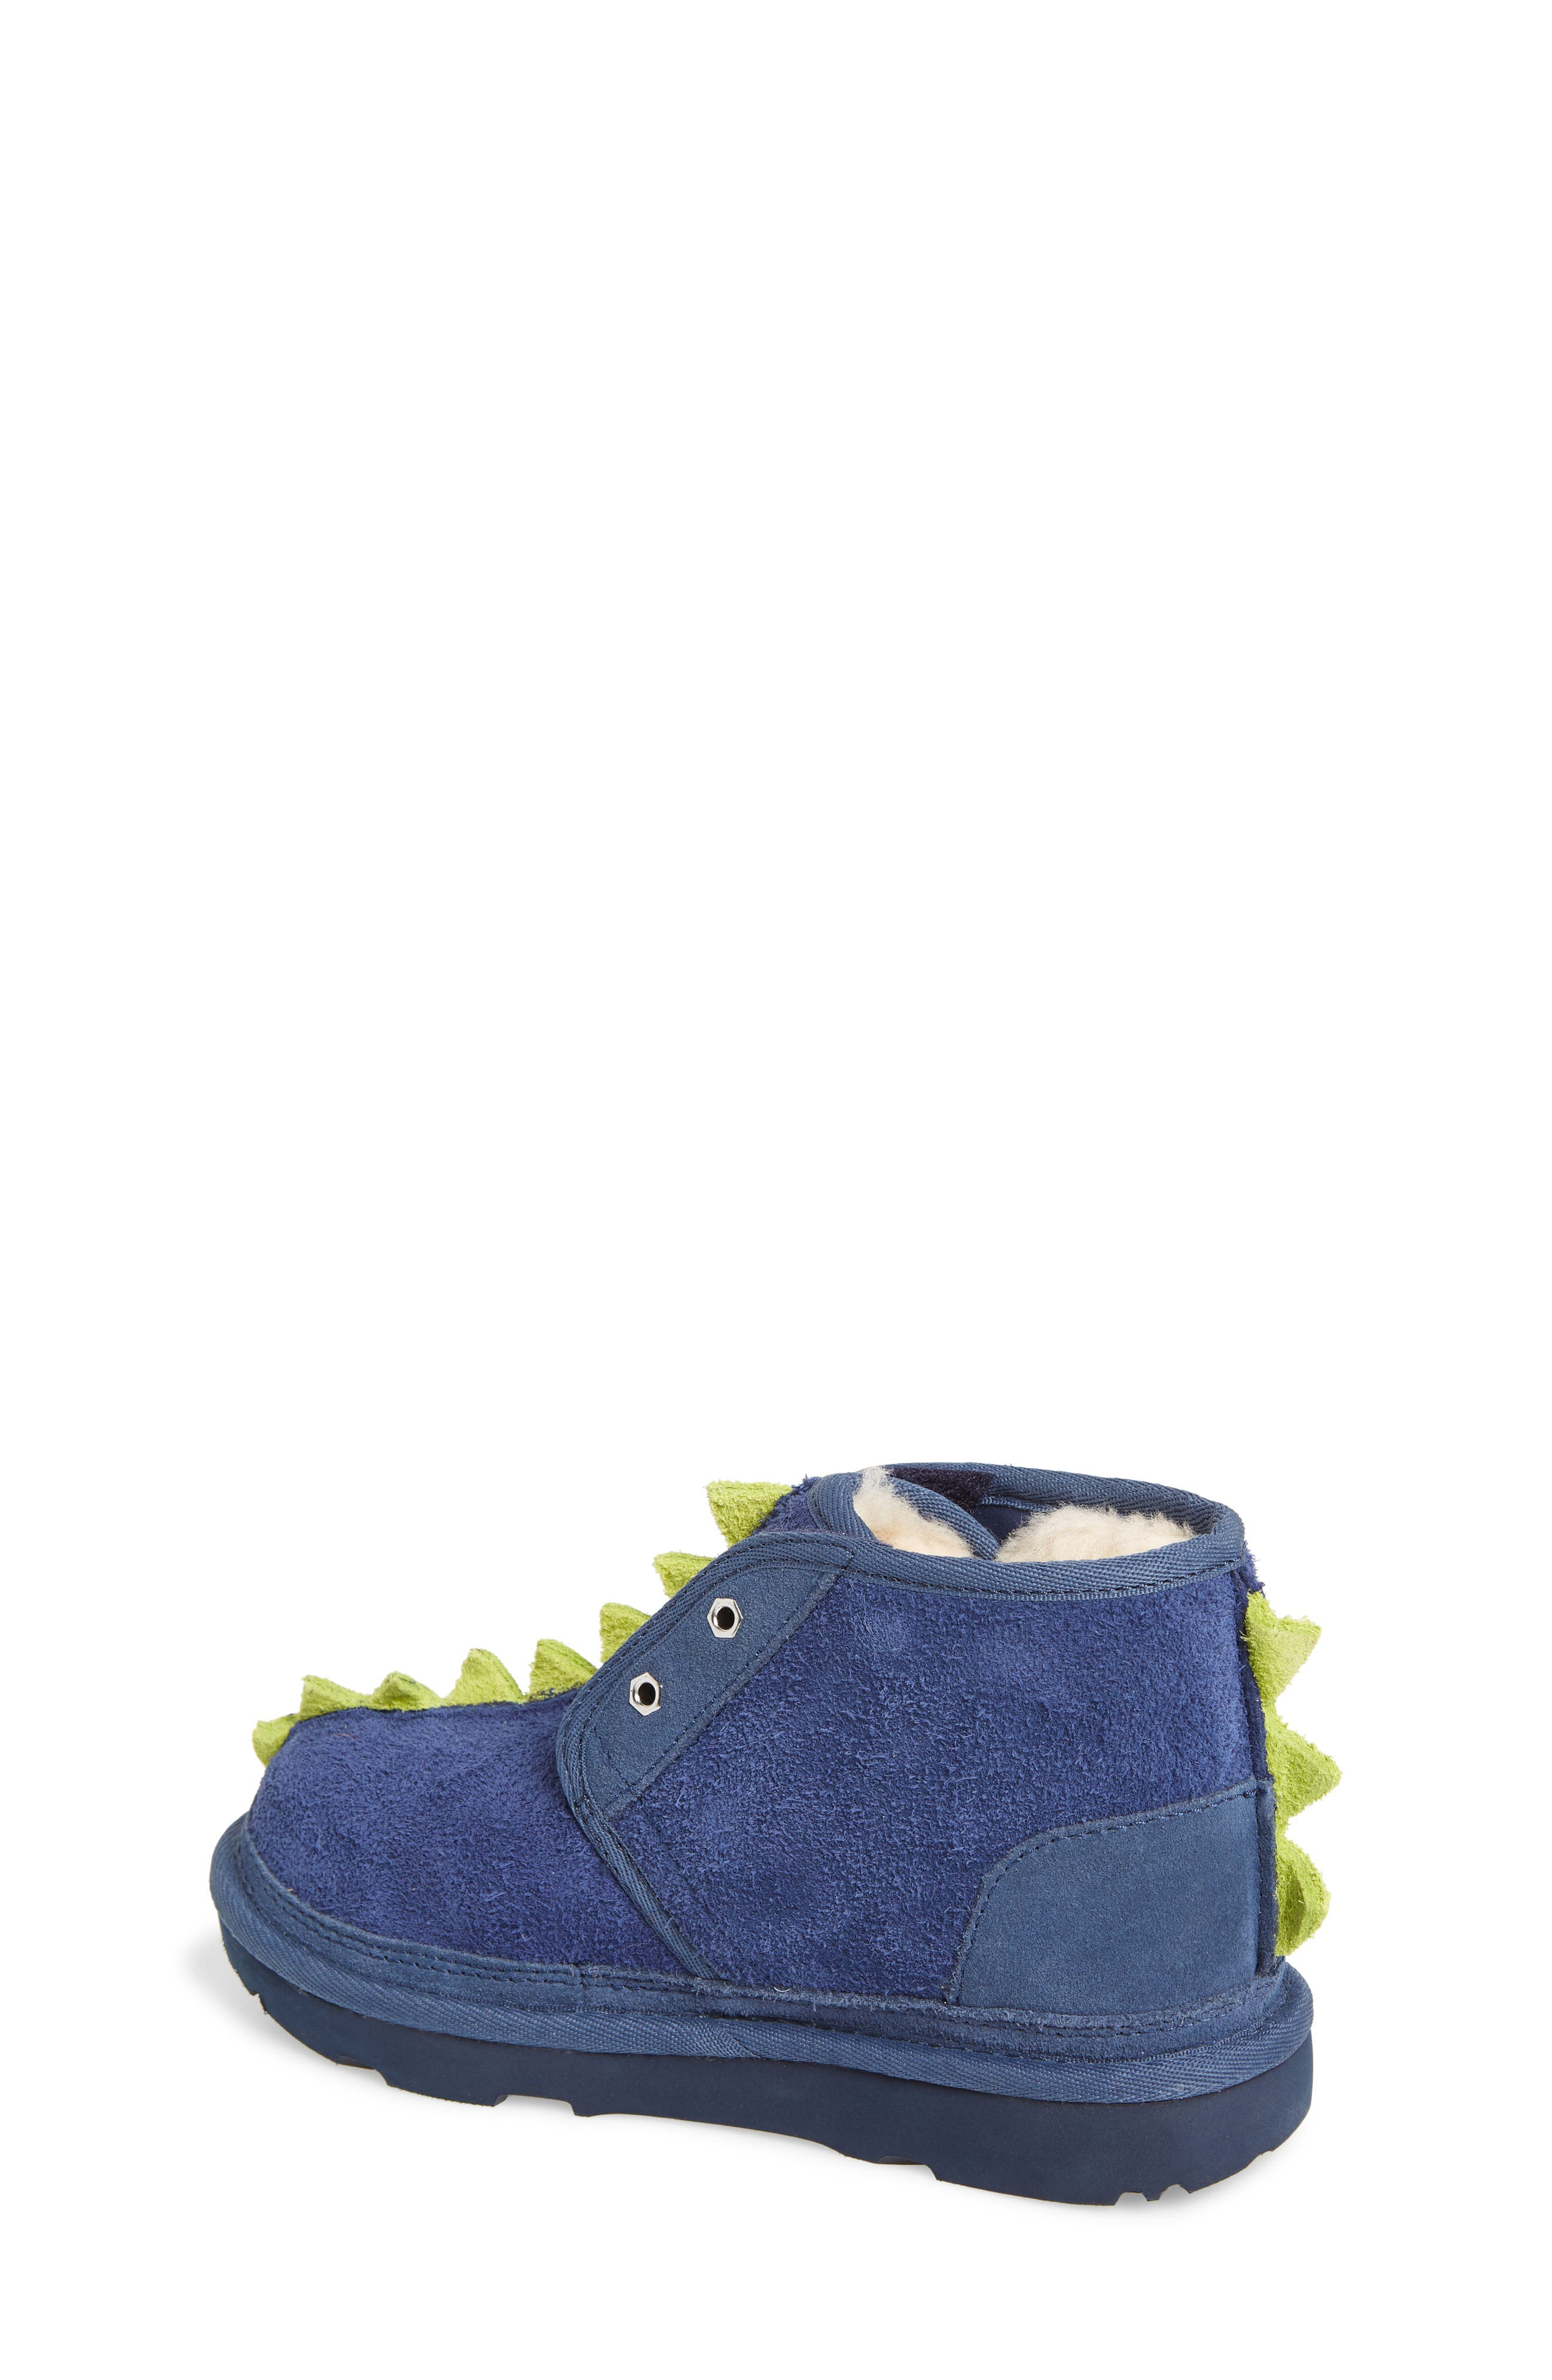 Dydo Neumel Genuine Shearling Lined Boot,                             Alternate thumbnail 2, color,                             NAVY / BRIGHT CHARTREUSE